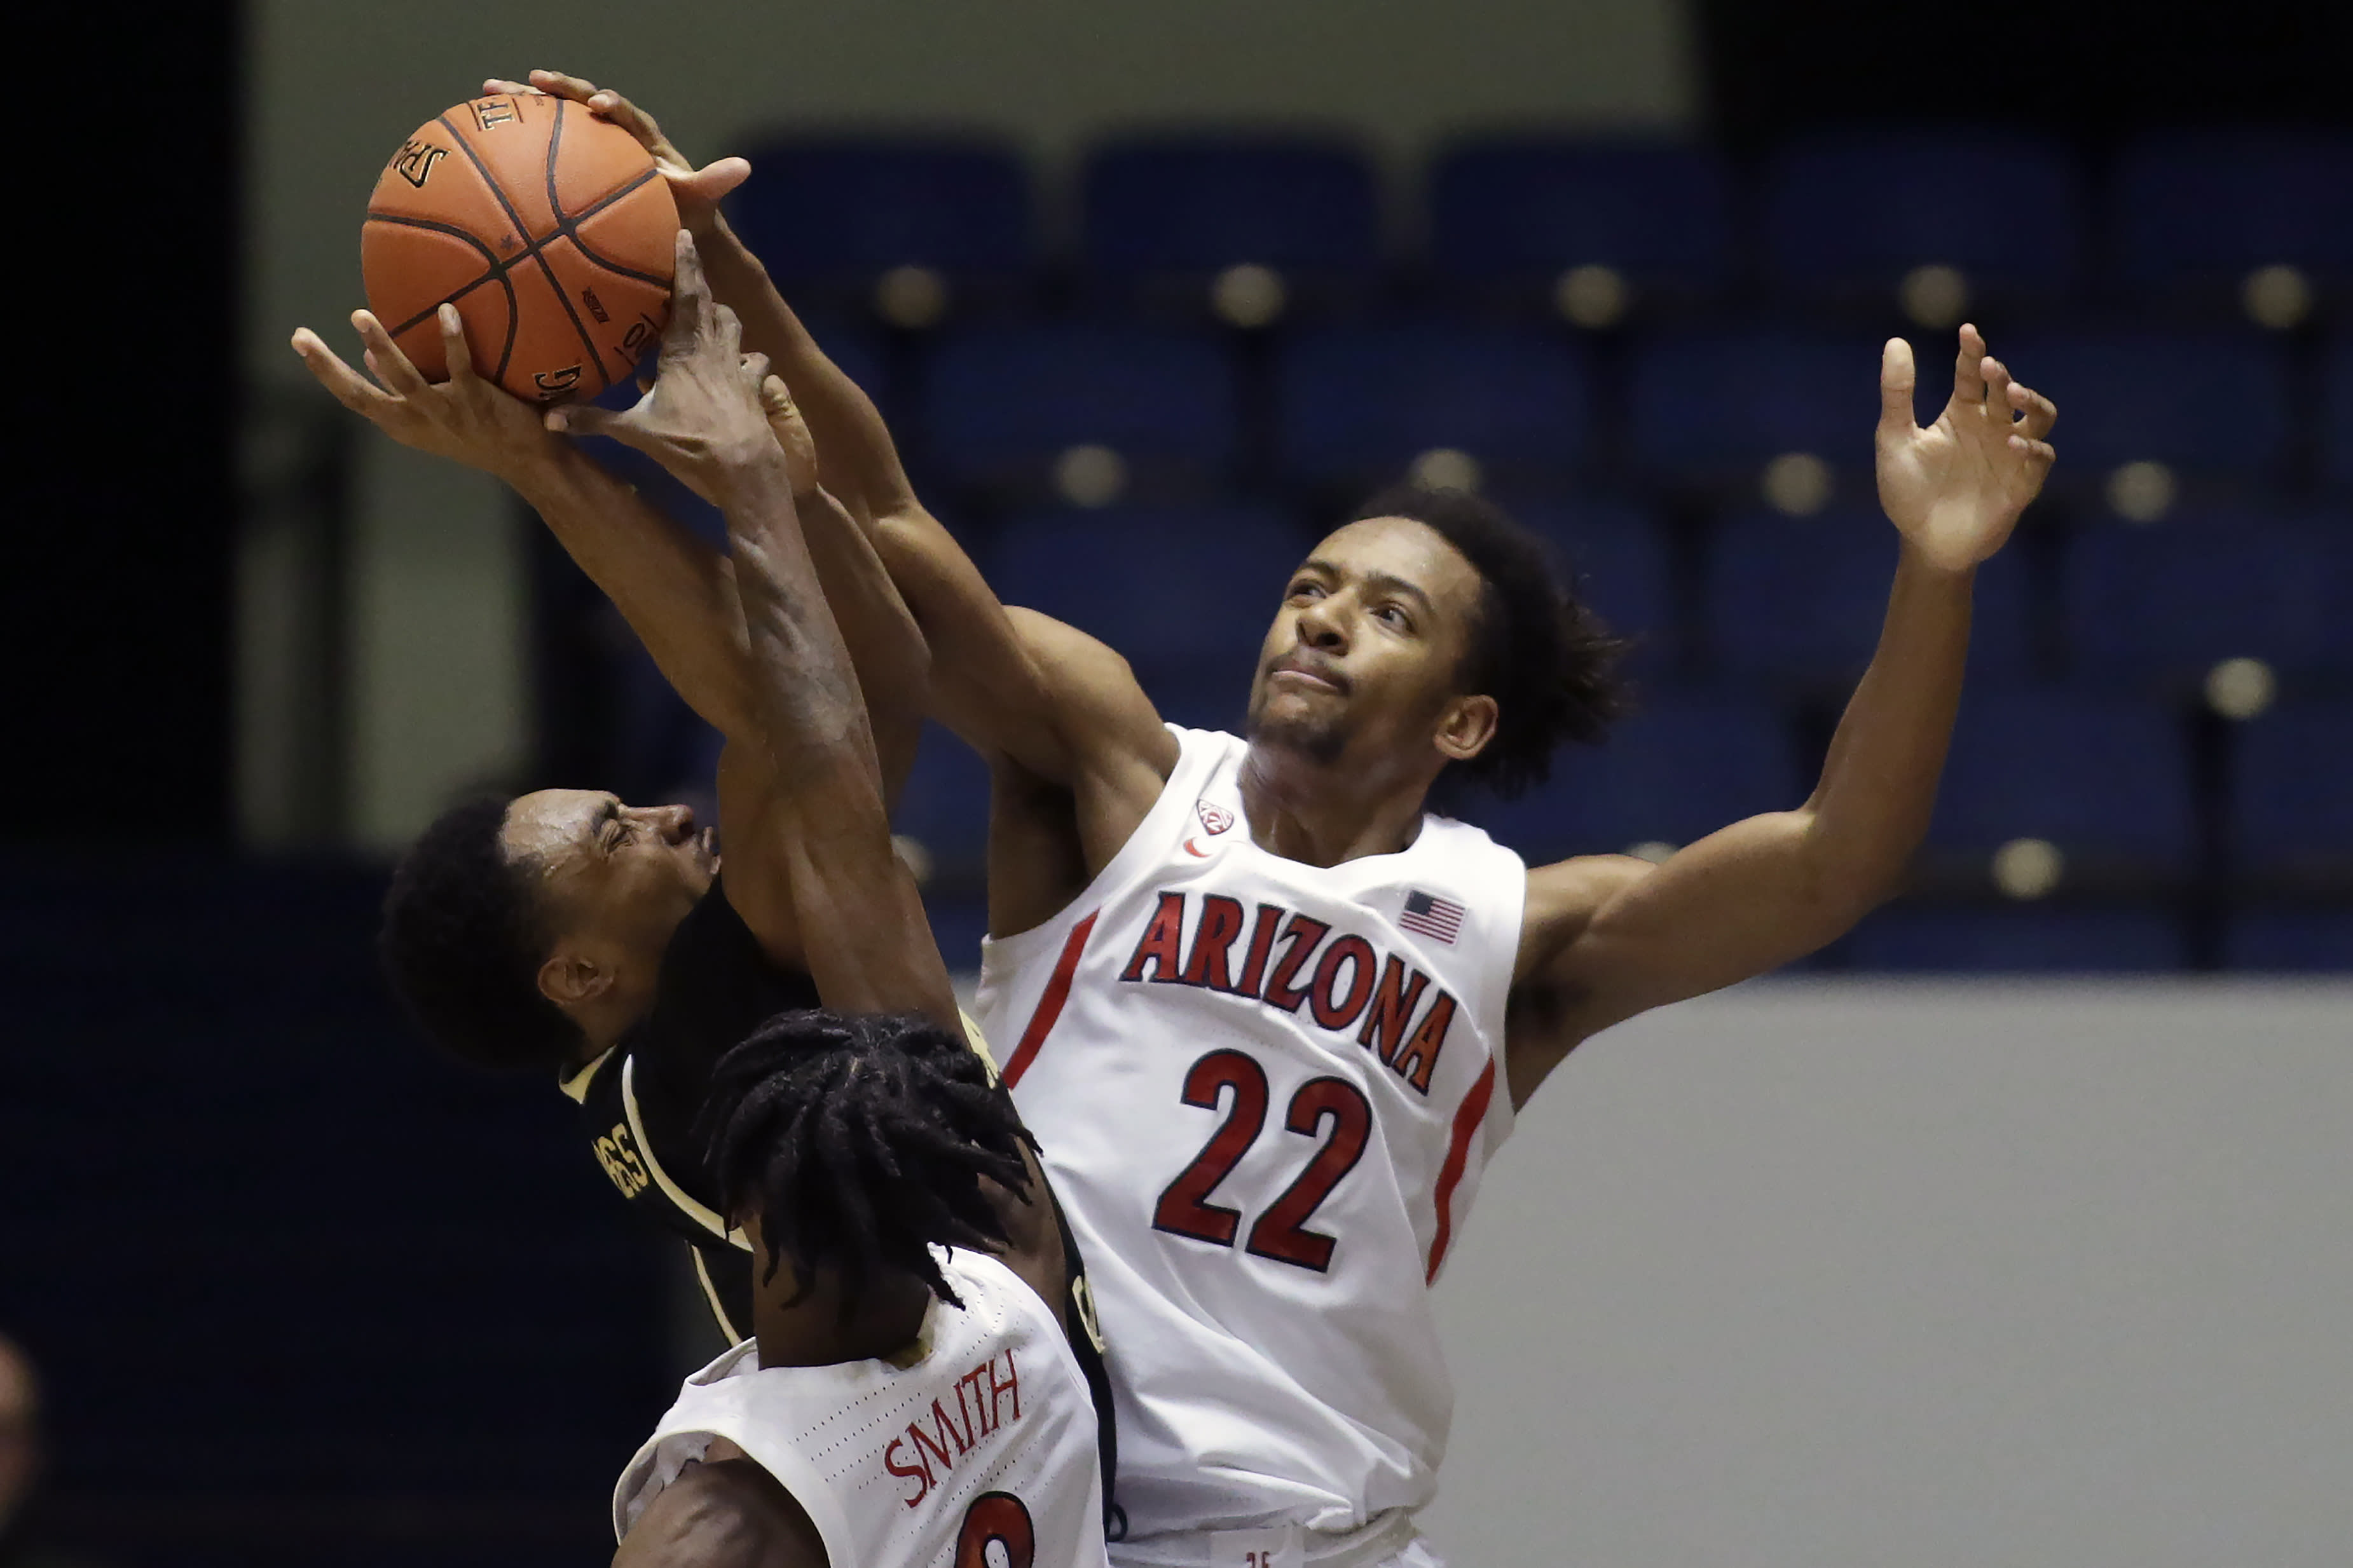 Arizona forward Zeke Nnaji, right, and guard Dylan Smith, bottom, block a shot by Wake Forest guard Brandon Childress, left, during the first half of an NCAA college basketball game at the Wooden Legacy tournament in Anaheim, Calif., Sunday, Dec. 1, 2019. (AP Photo/Alex Gallardo)